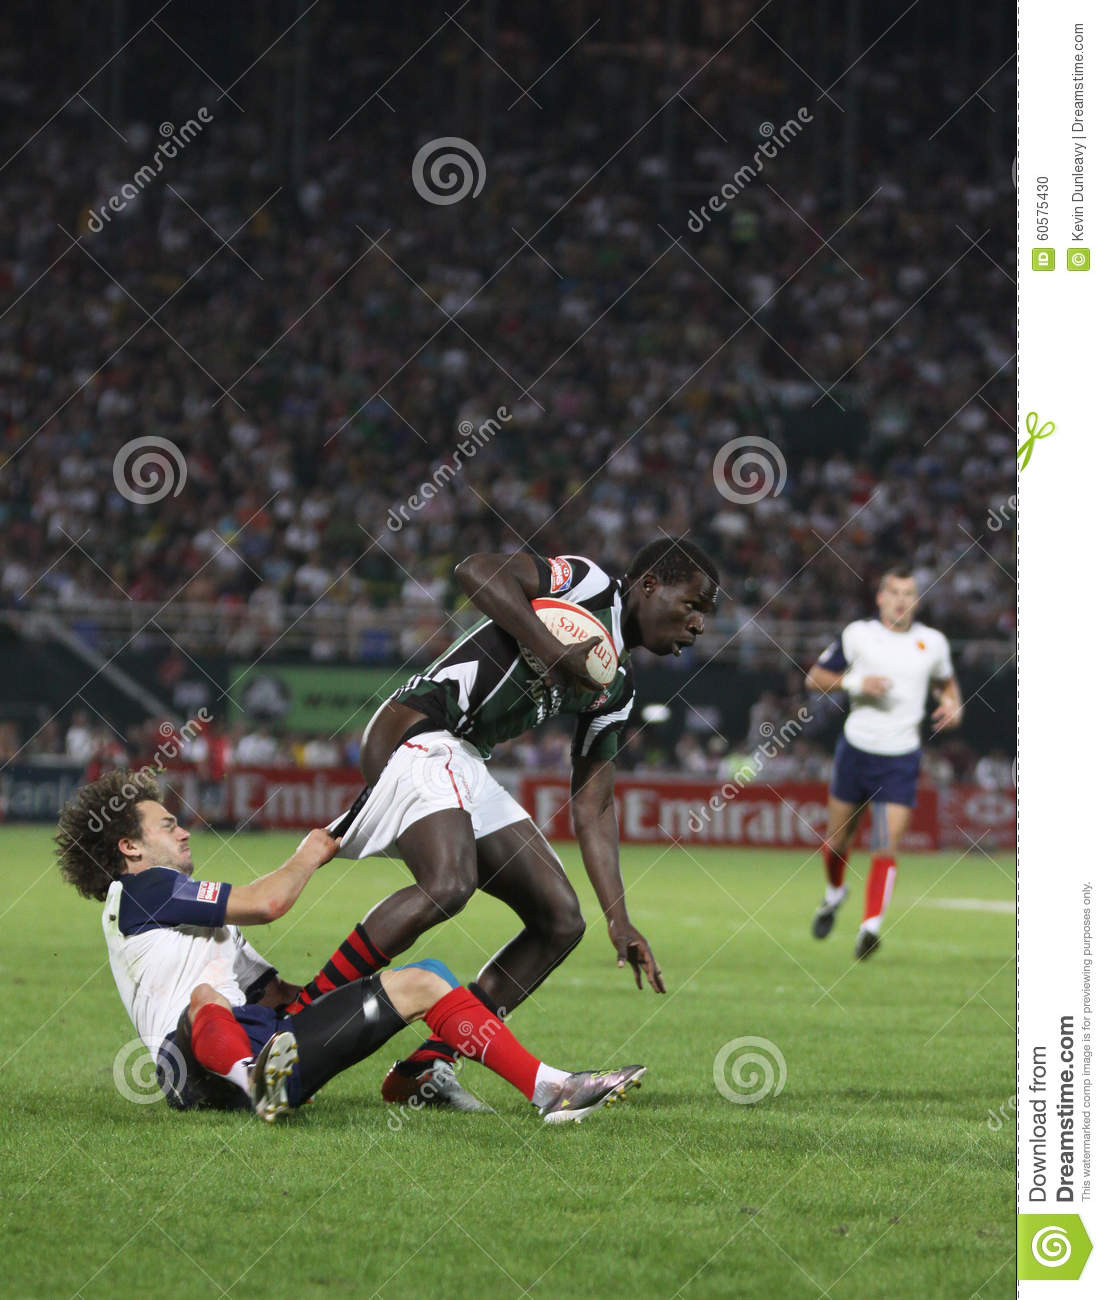 Funny Rugby Tackle Editorial Image Image Of Tackle Dubai 60575430